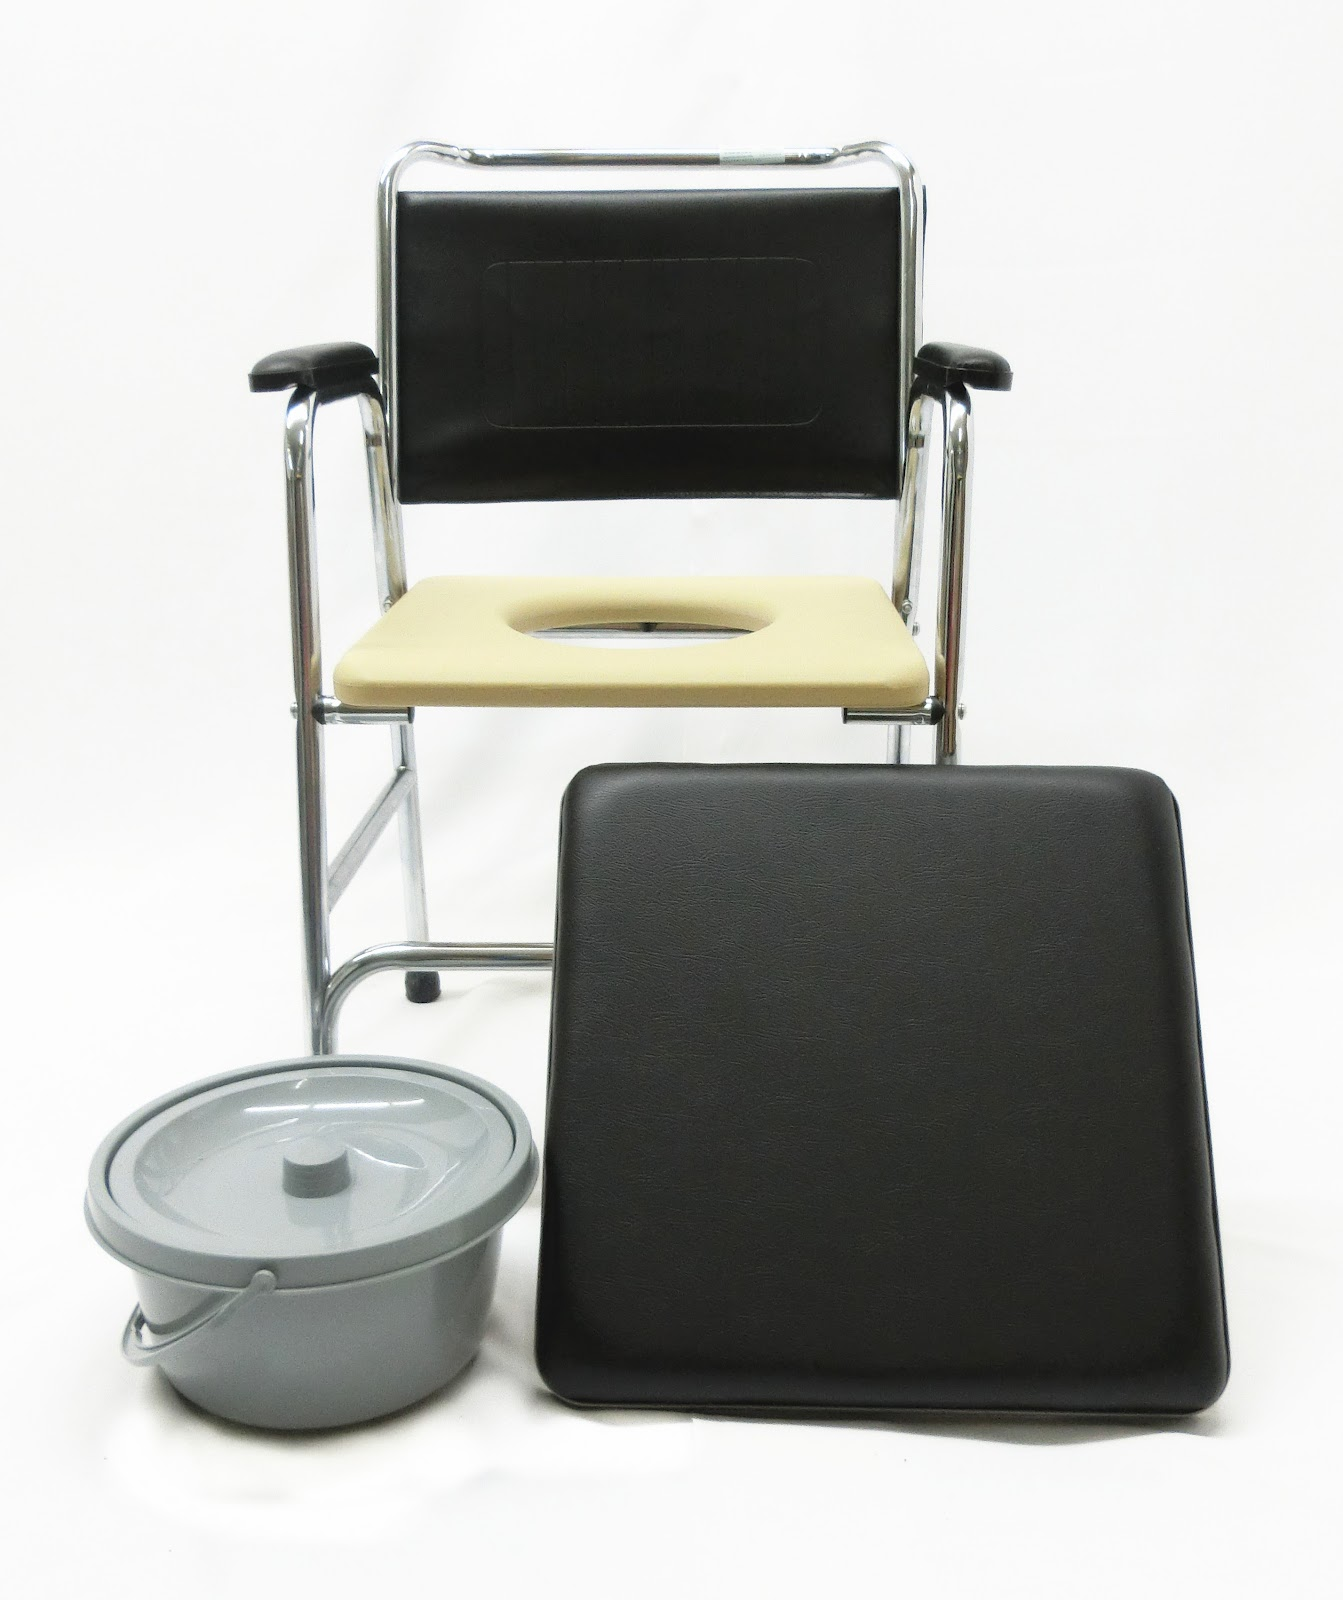 shower chair malaysia directions to covers and linens commode without foot holder ke end 7 31 2017 8 15 pm